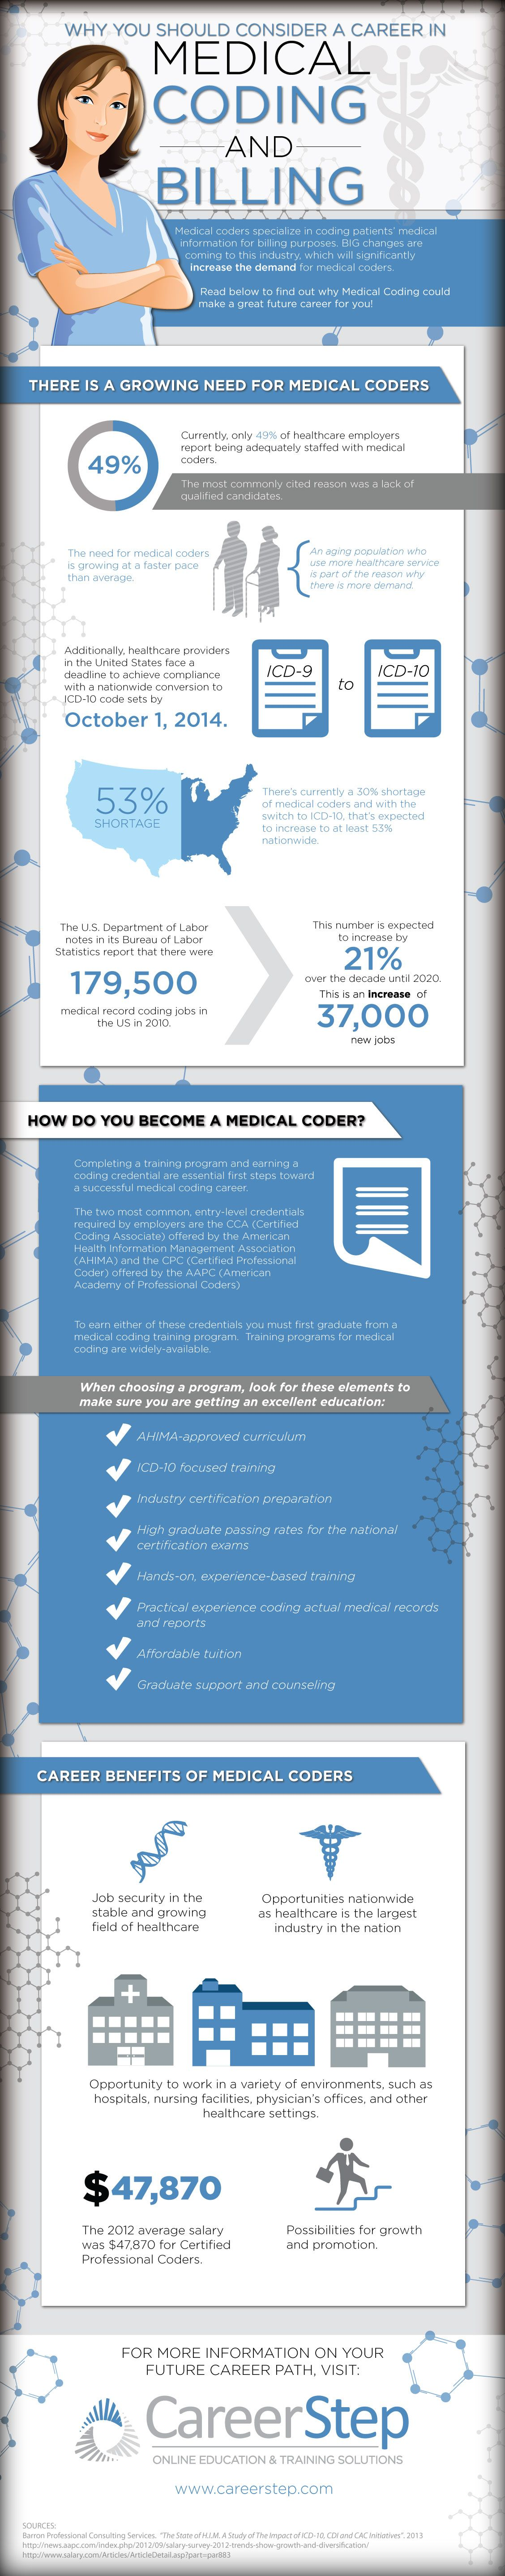 State of the medical coding and billing industry infographic medical billing and coding jobs are in demand get trained and even find a position that allows you to work at home xflitez Image collections